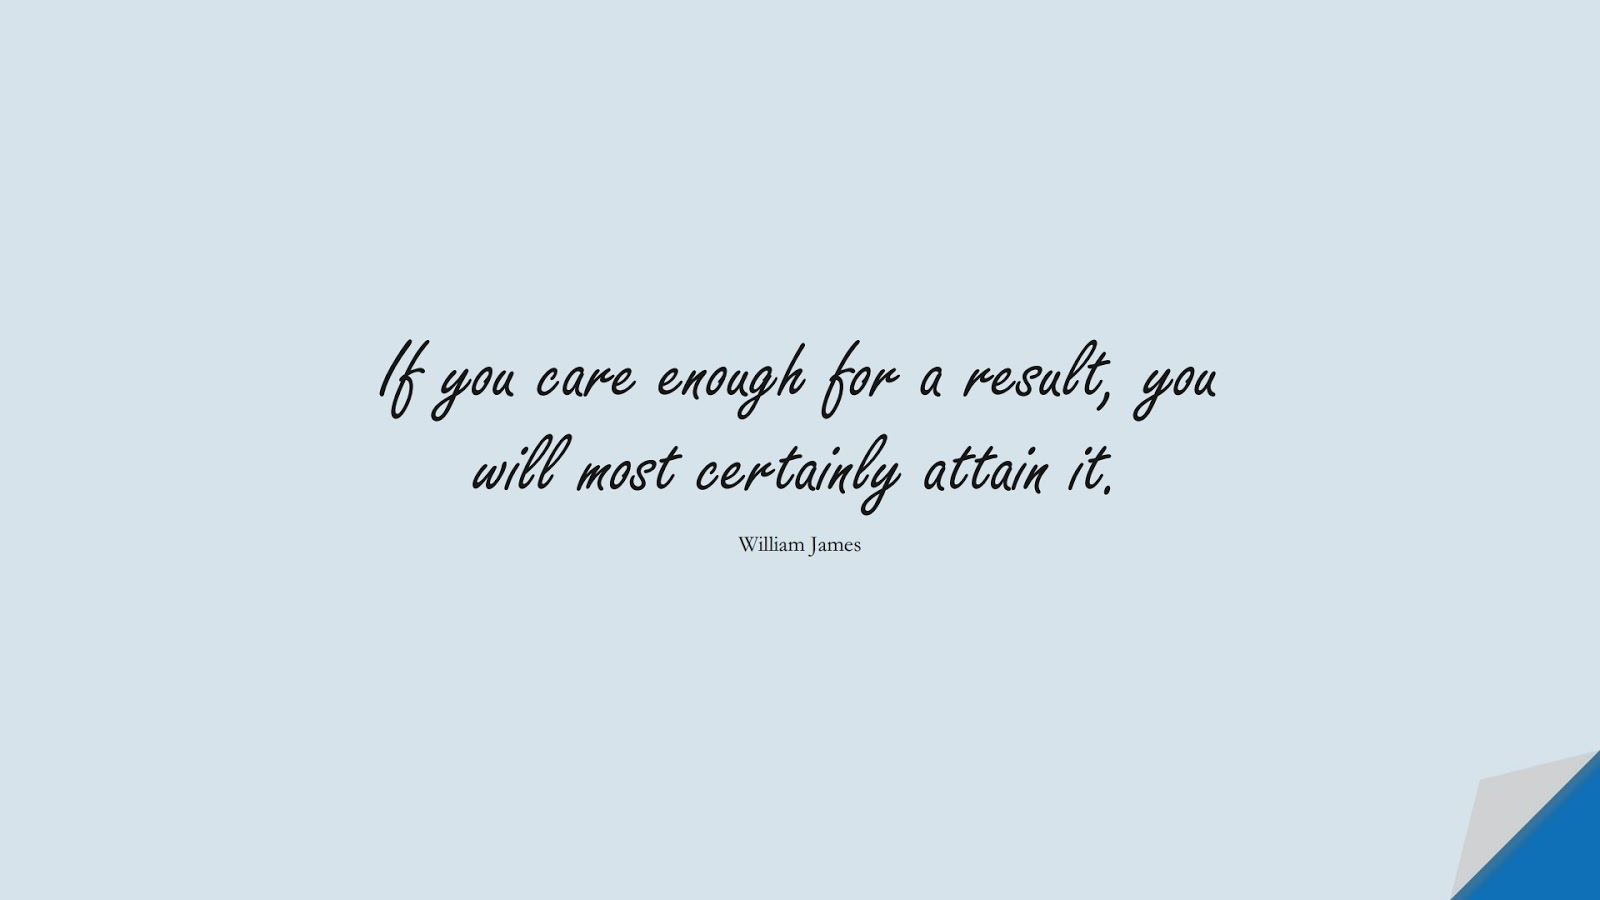 If you care enough for a result, you will most certainly attain it. (William James);  #InspirationalQuotes